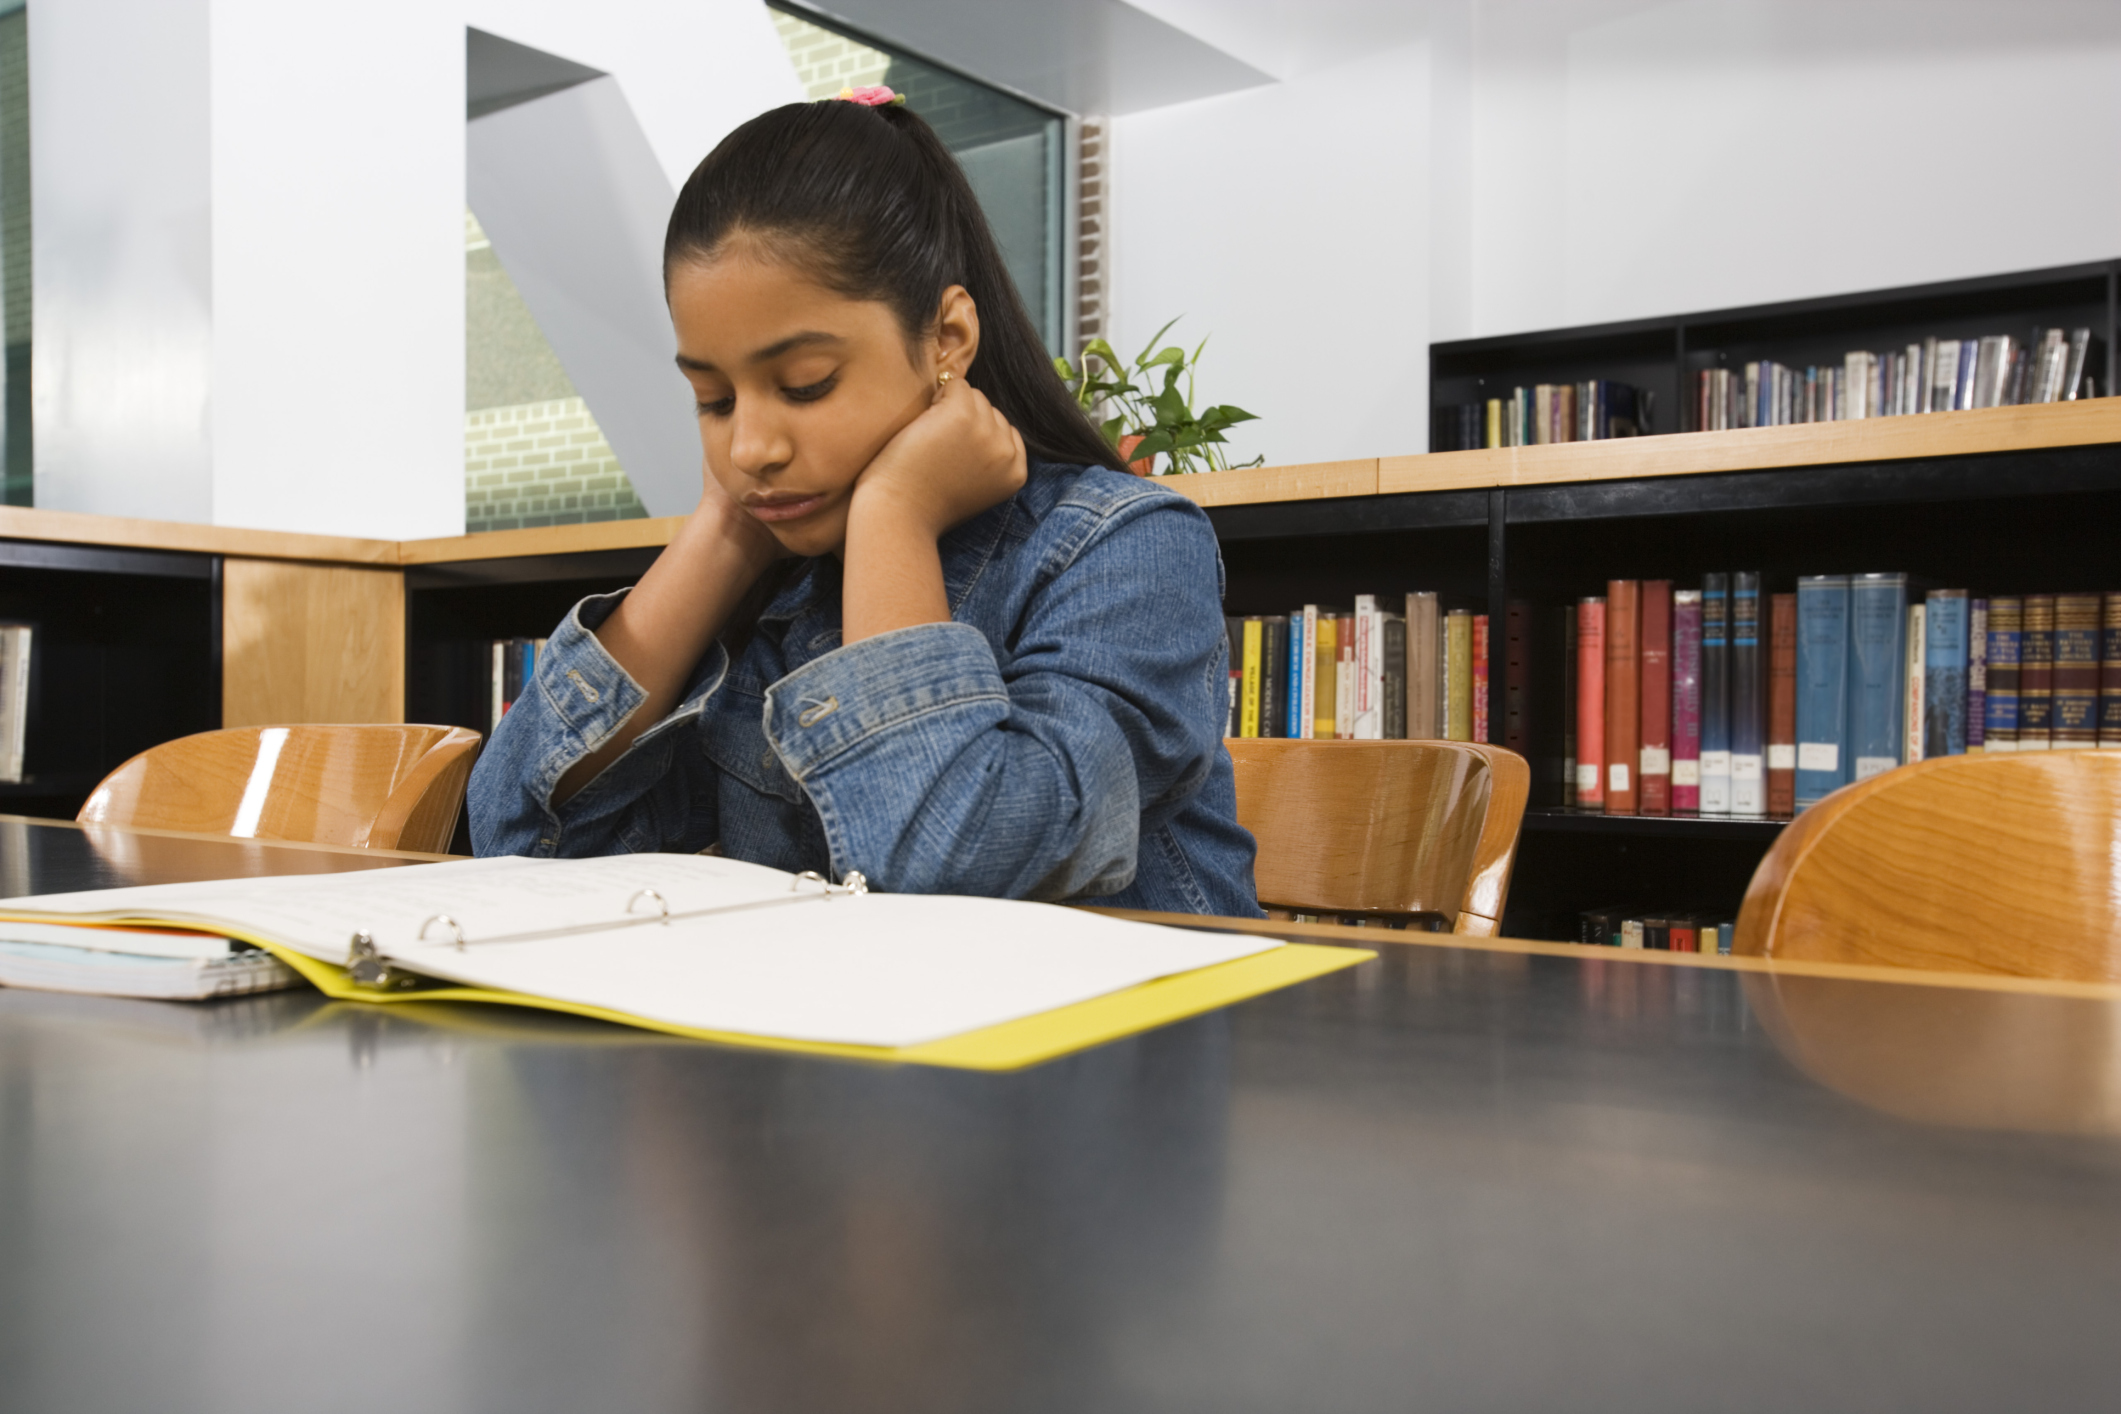 How To Help High School Students Struggling With Reading Comprehension